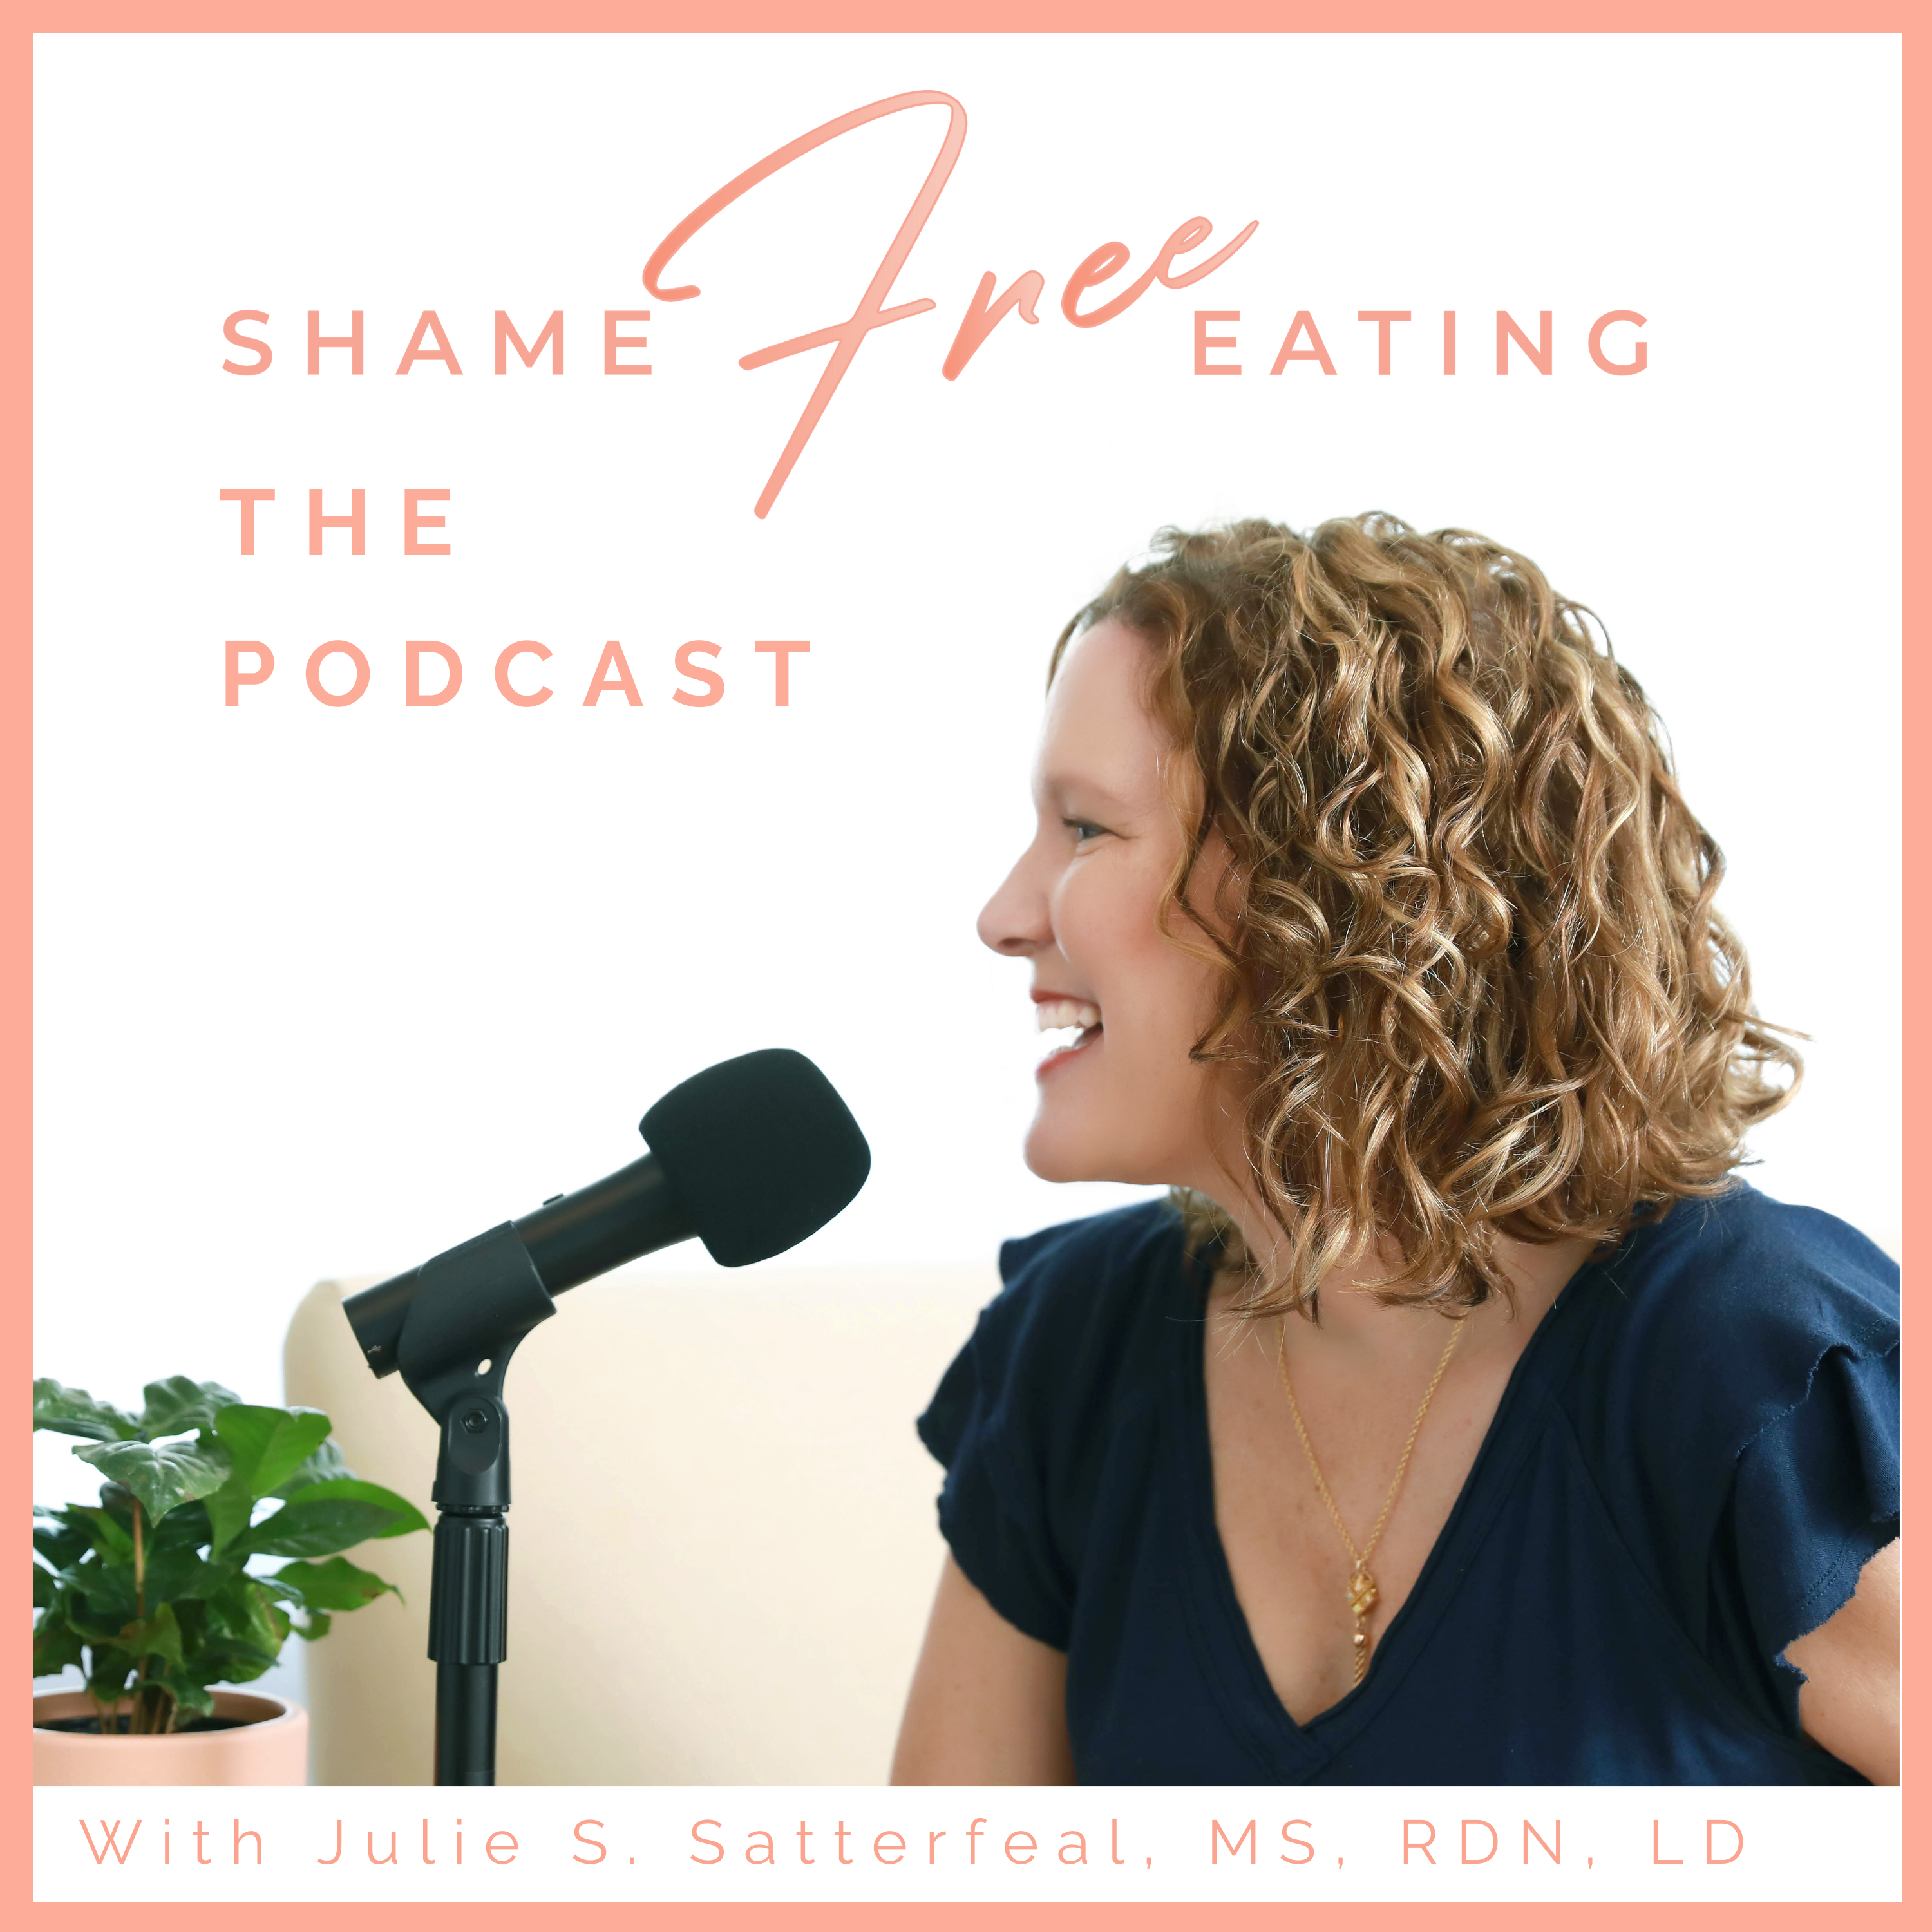 Image is a photograph of Julie Satterfeal in profile facing a black microphone with a small potted plant to the side. Words above Julie's head read Shame Free Eating The Podcast. Words at the bottom of the screen read with Julie S. Satterfeal MS. RDN. LD